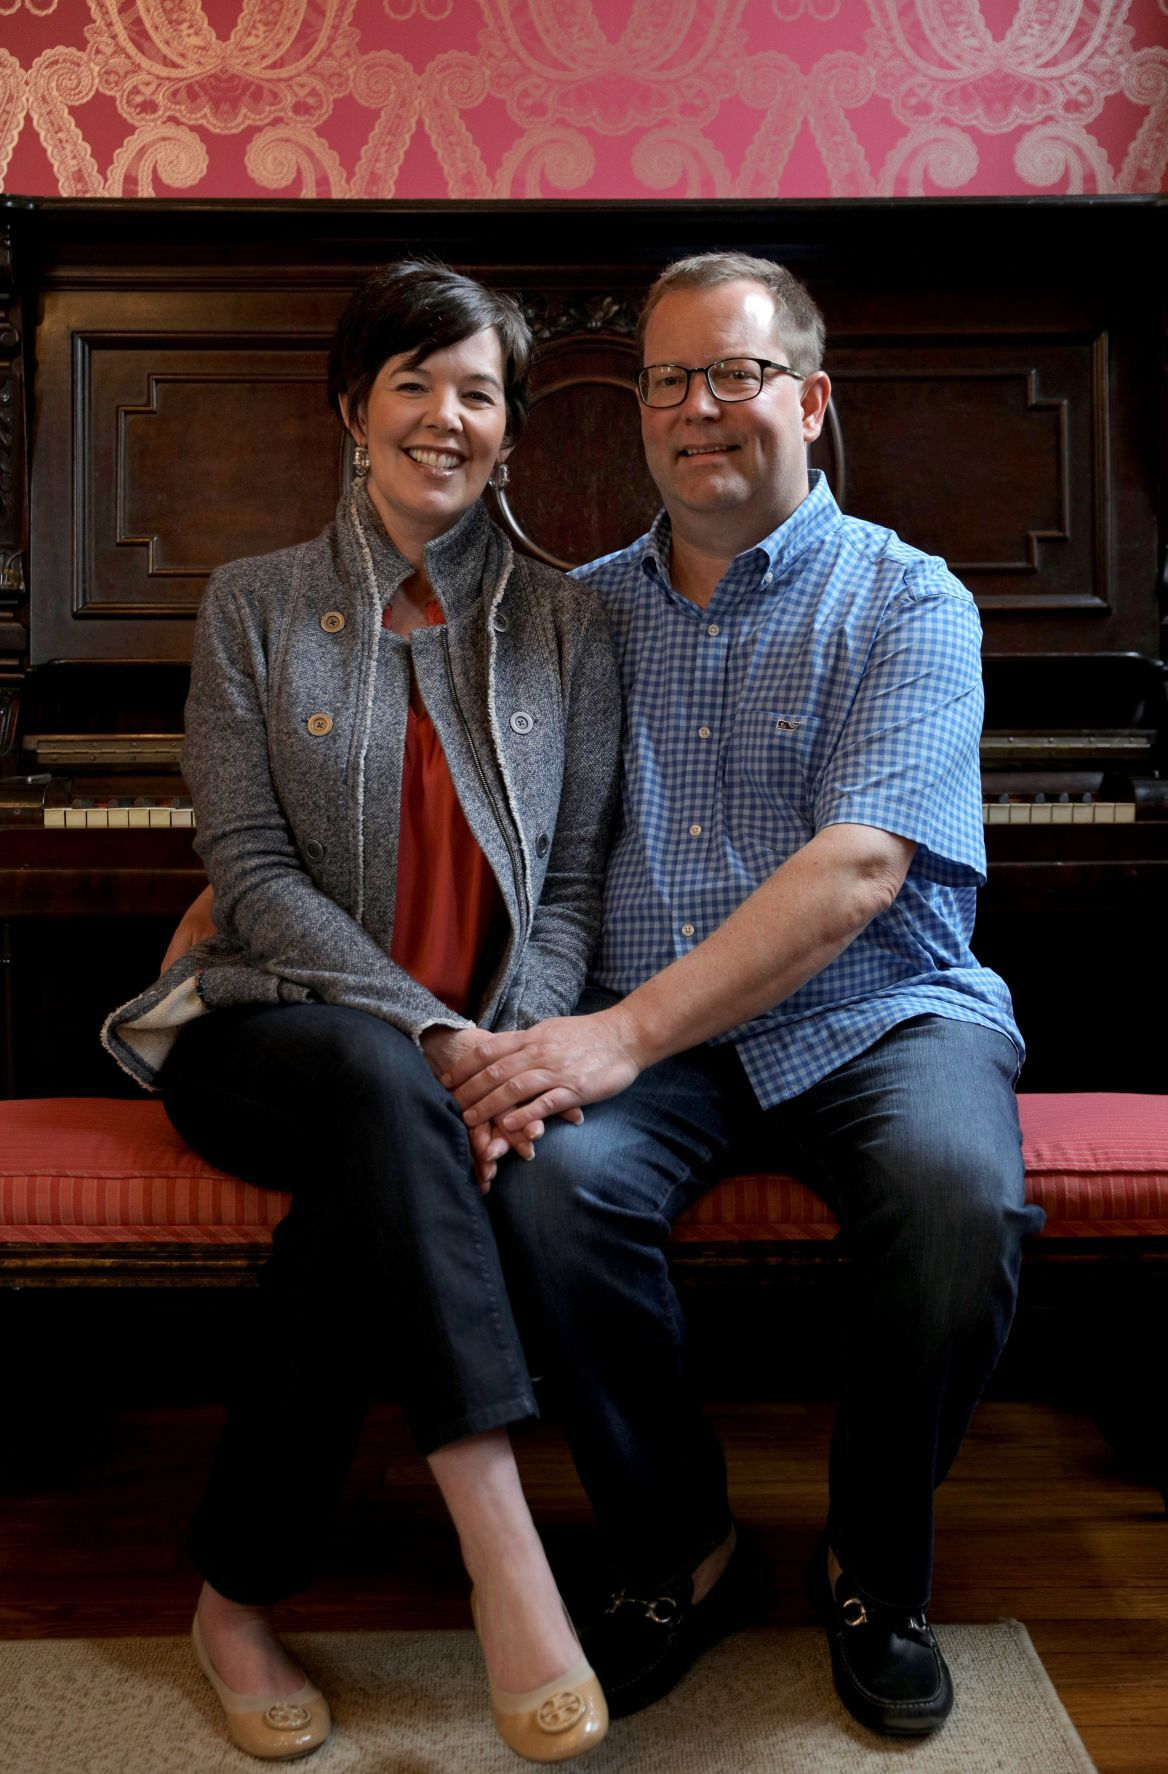 At home with the Joneses in Lafayette Square